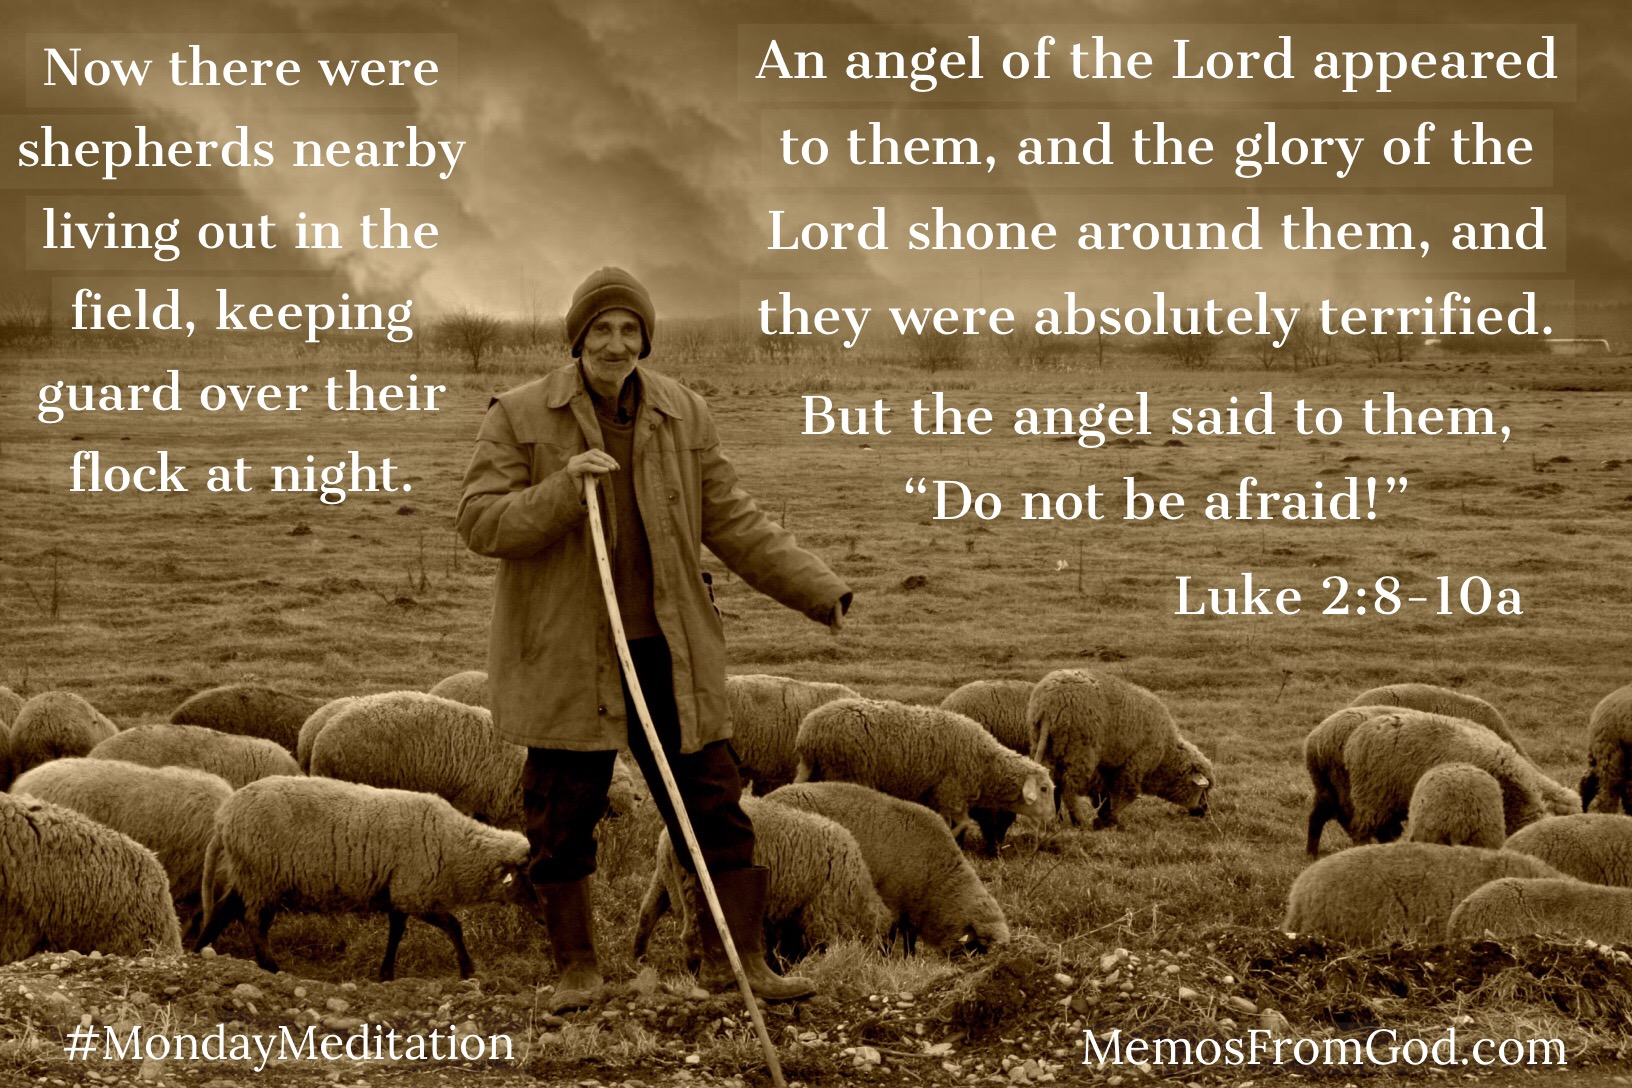 "Now there were shepherds nearby living out in the field, keeping guard over their flock at night. An angel of the Lord appeared to them, and the glory of the Lord shone around them, and they were absolutely terrified. But the angel said to them, ""Do not be afraid!"" Luke 2:8-10a"